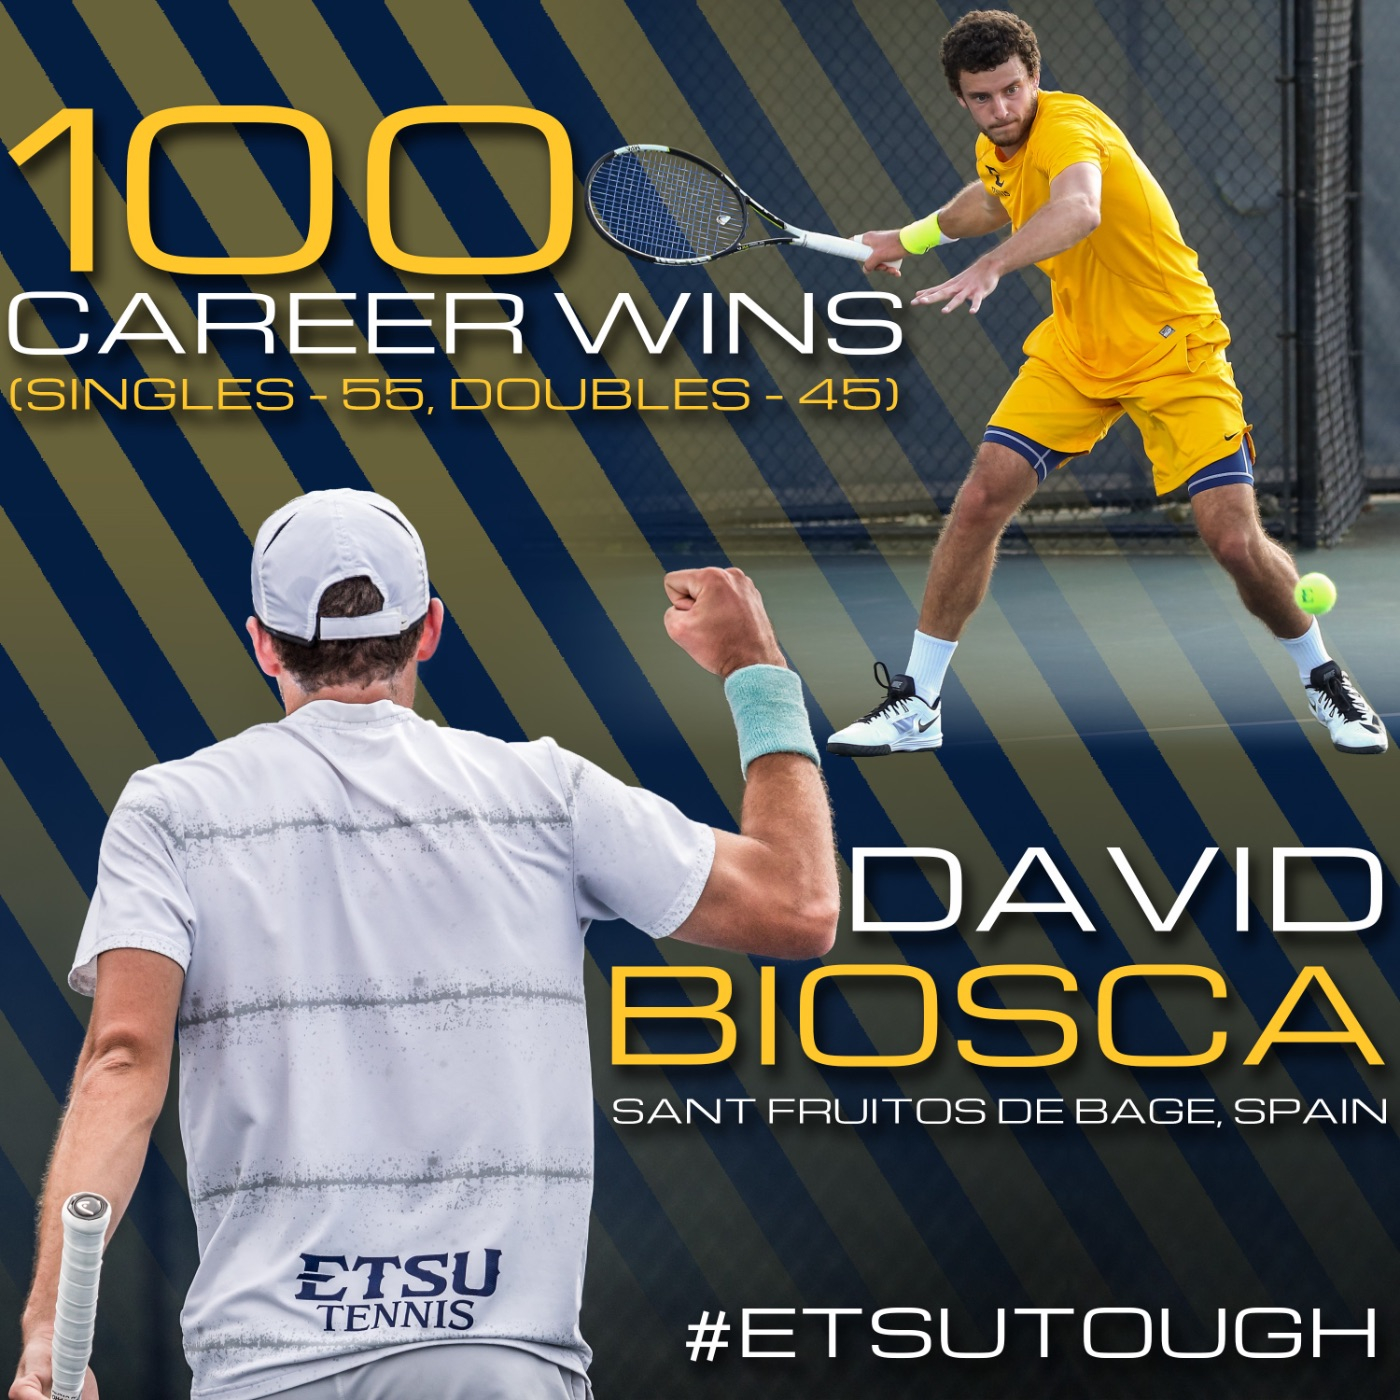 Graphic commemorating David Biosca's 100th career victory at ETSU after he won the doubles match in today's match against MTSU.